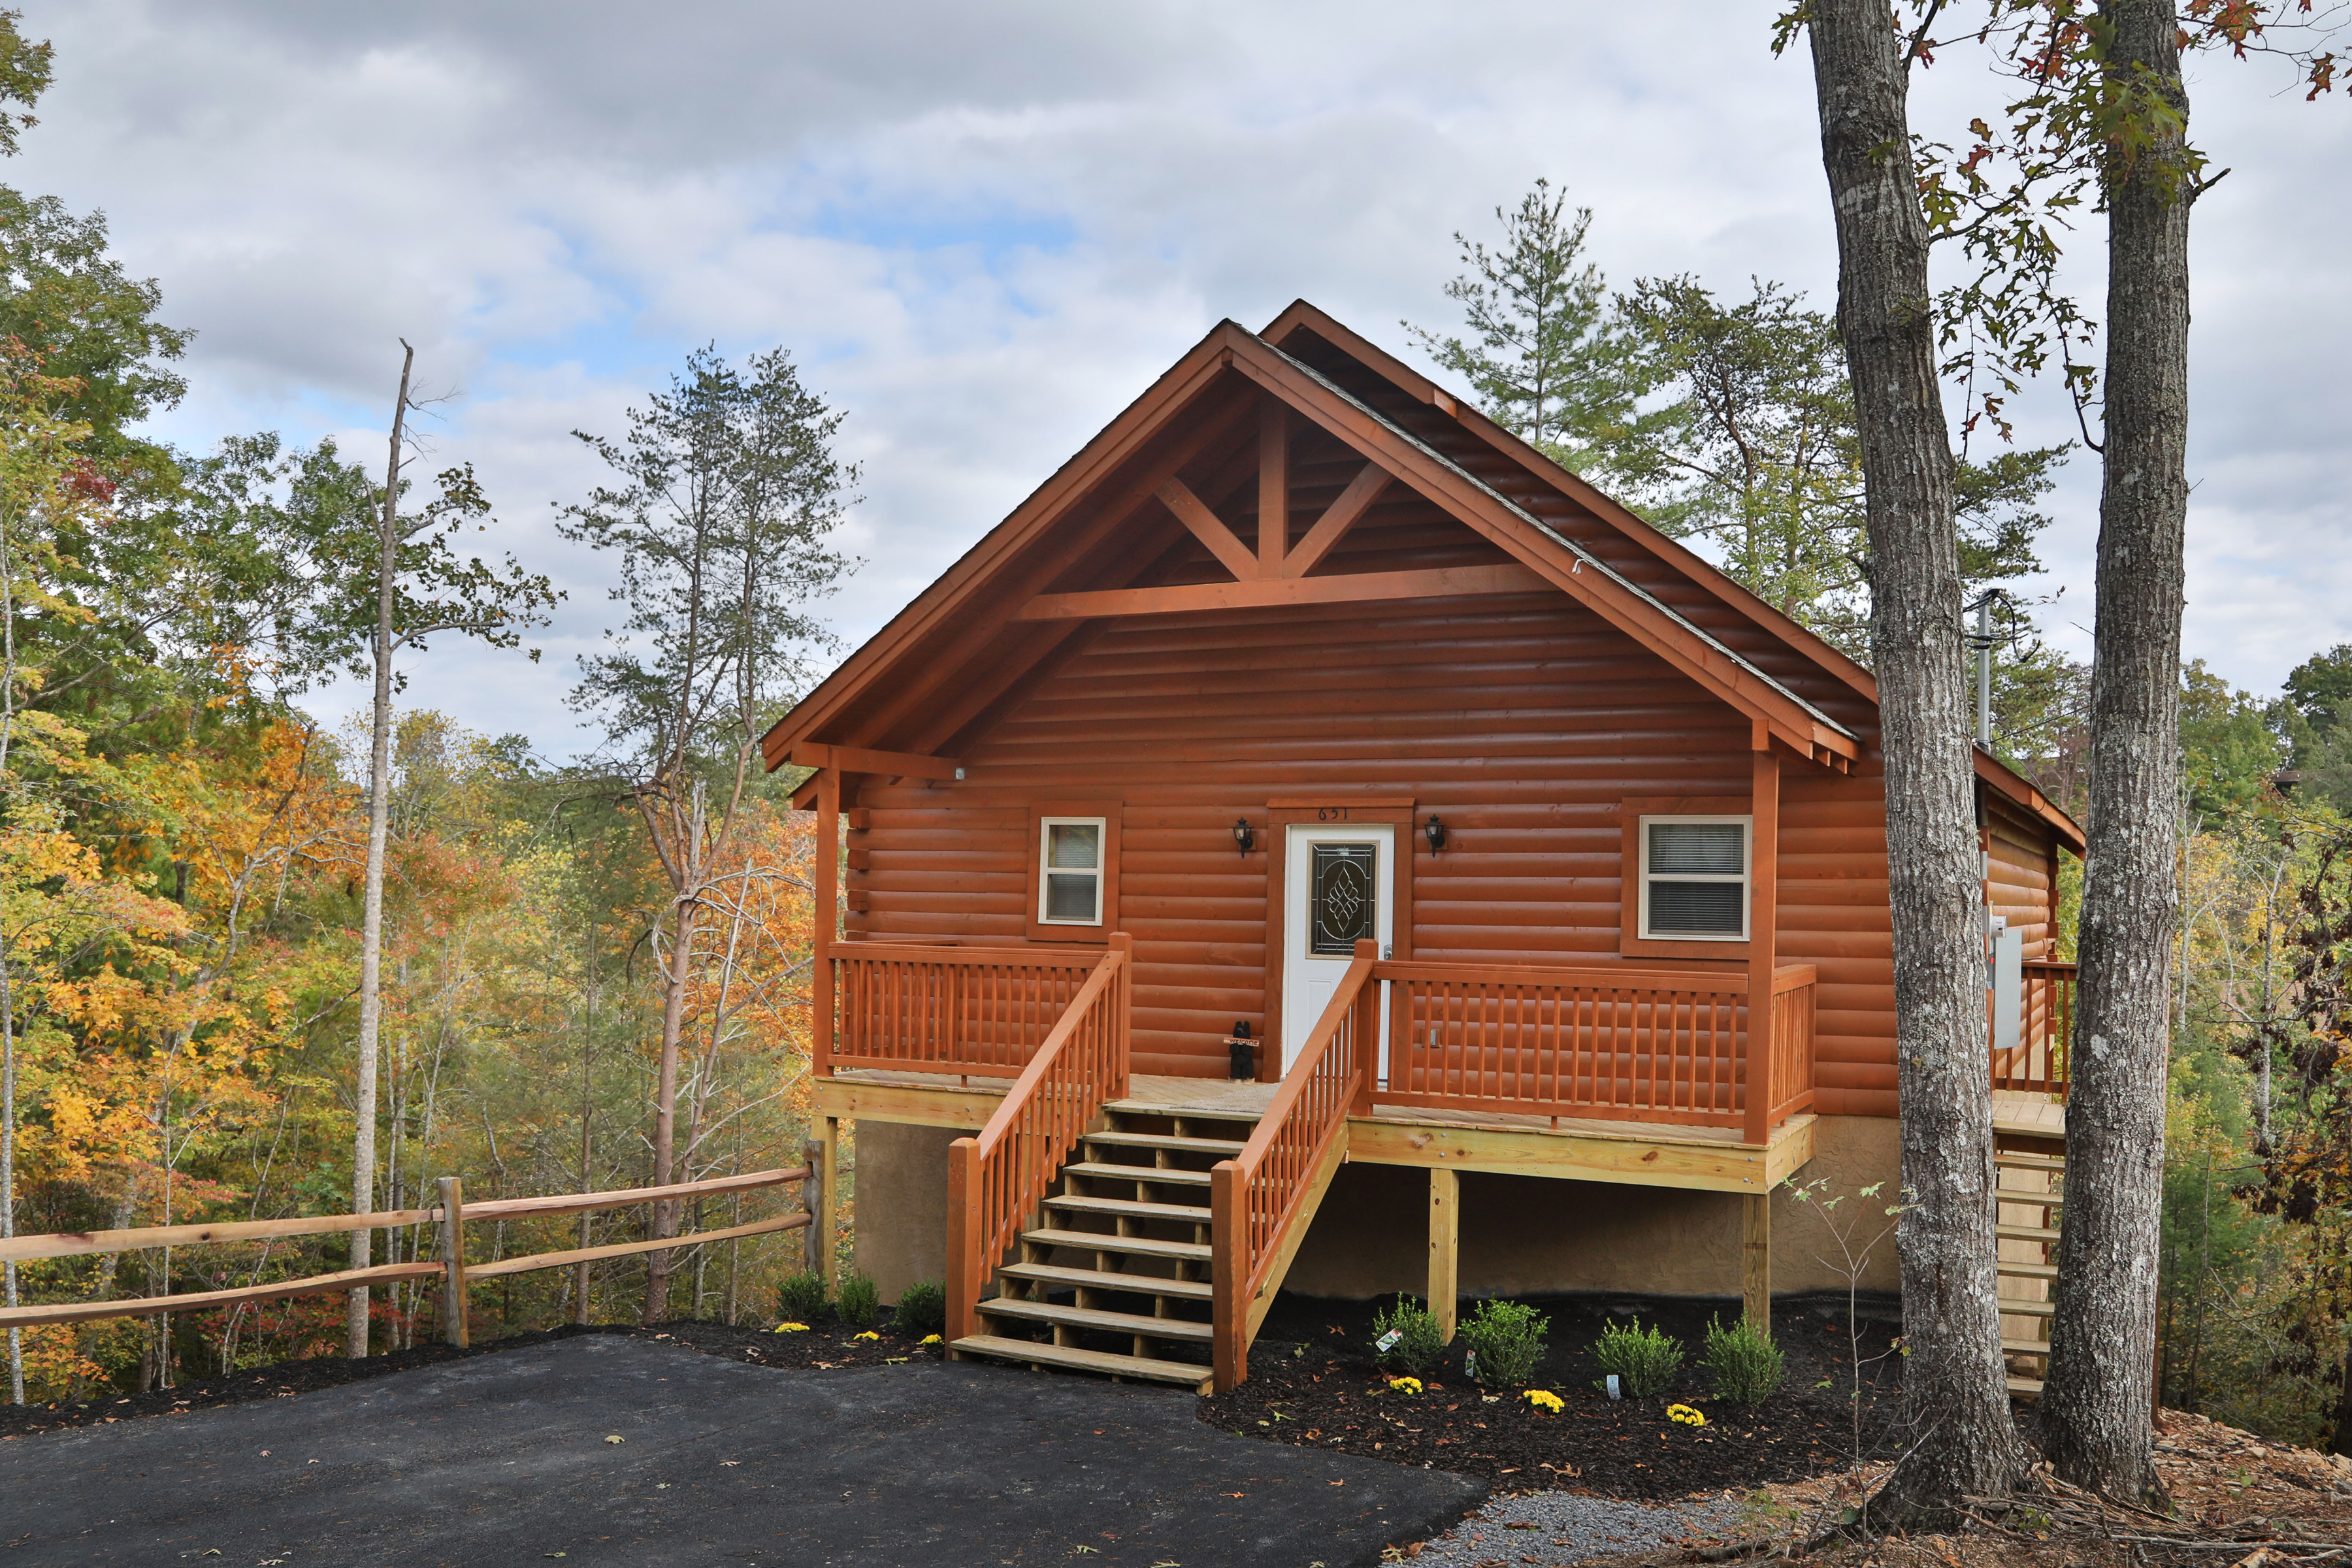 dsc at sale htm in luxuryhomesandcabins cabins luxury homes and forge pigeon for